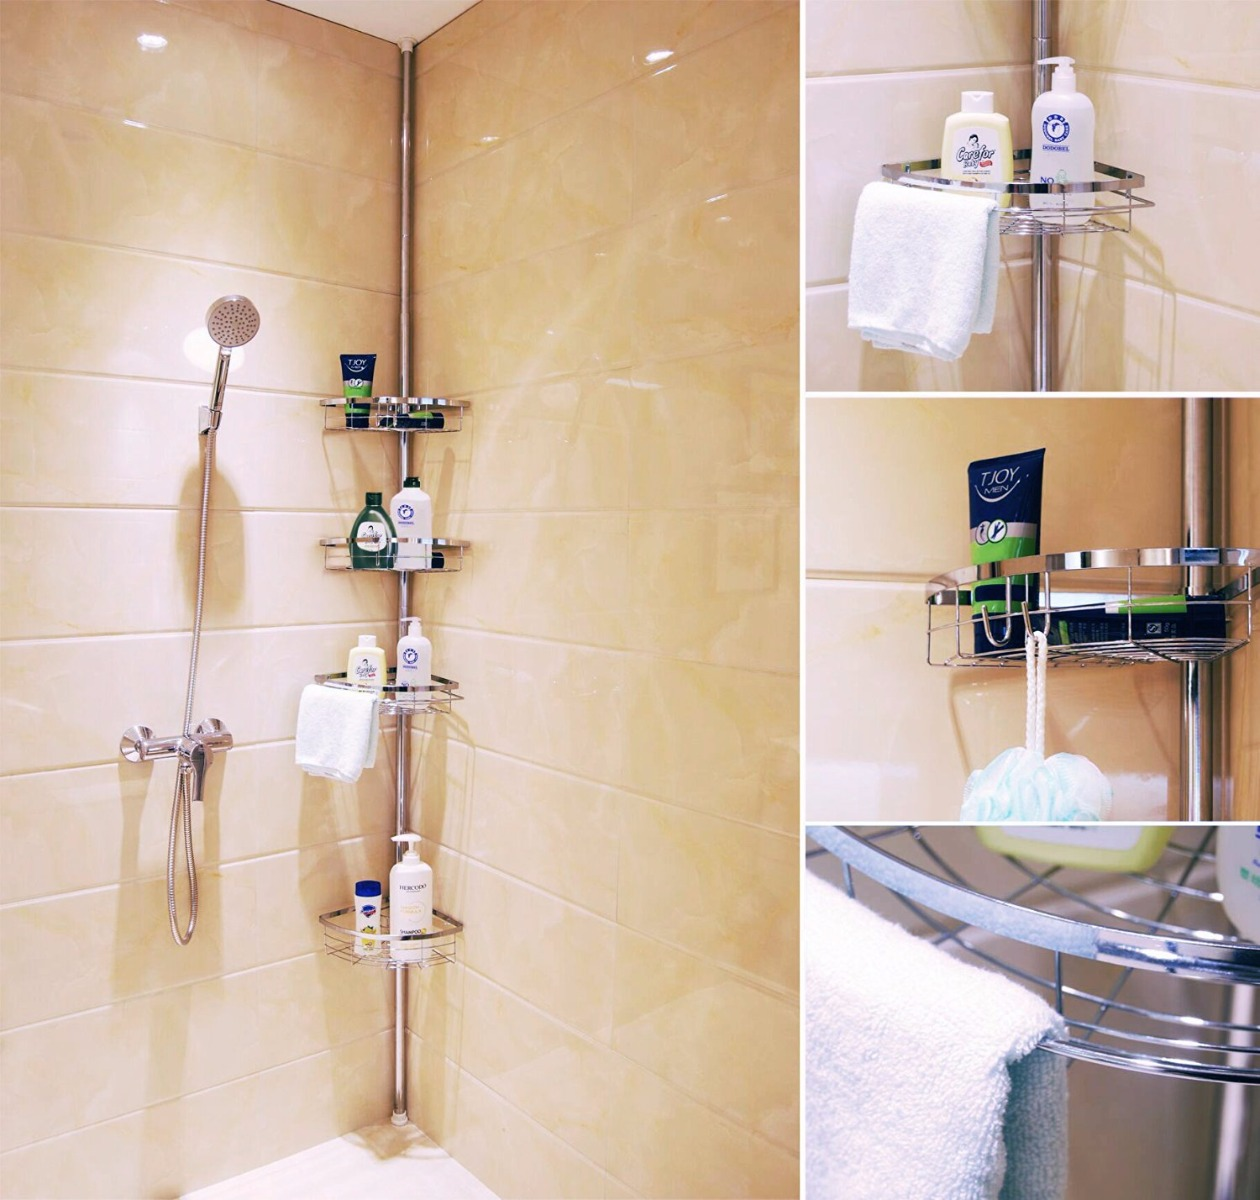 Shower Rack. Stunning Bathroom Caddy Holder Organizer Over Shower ...